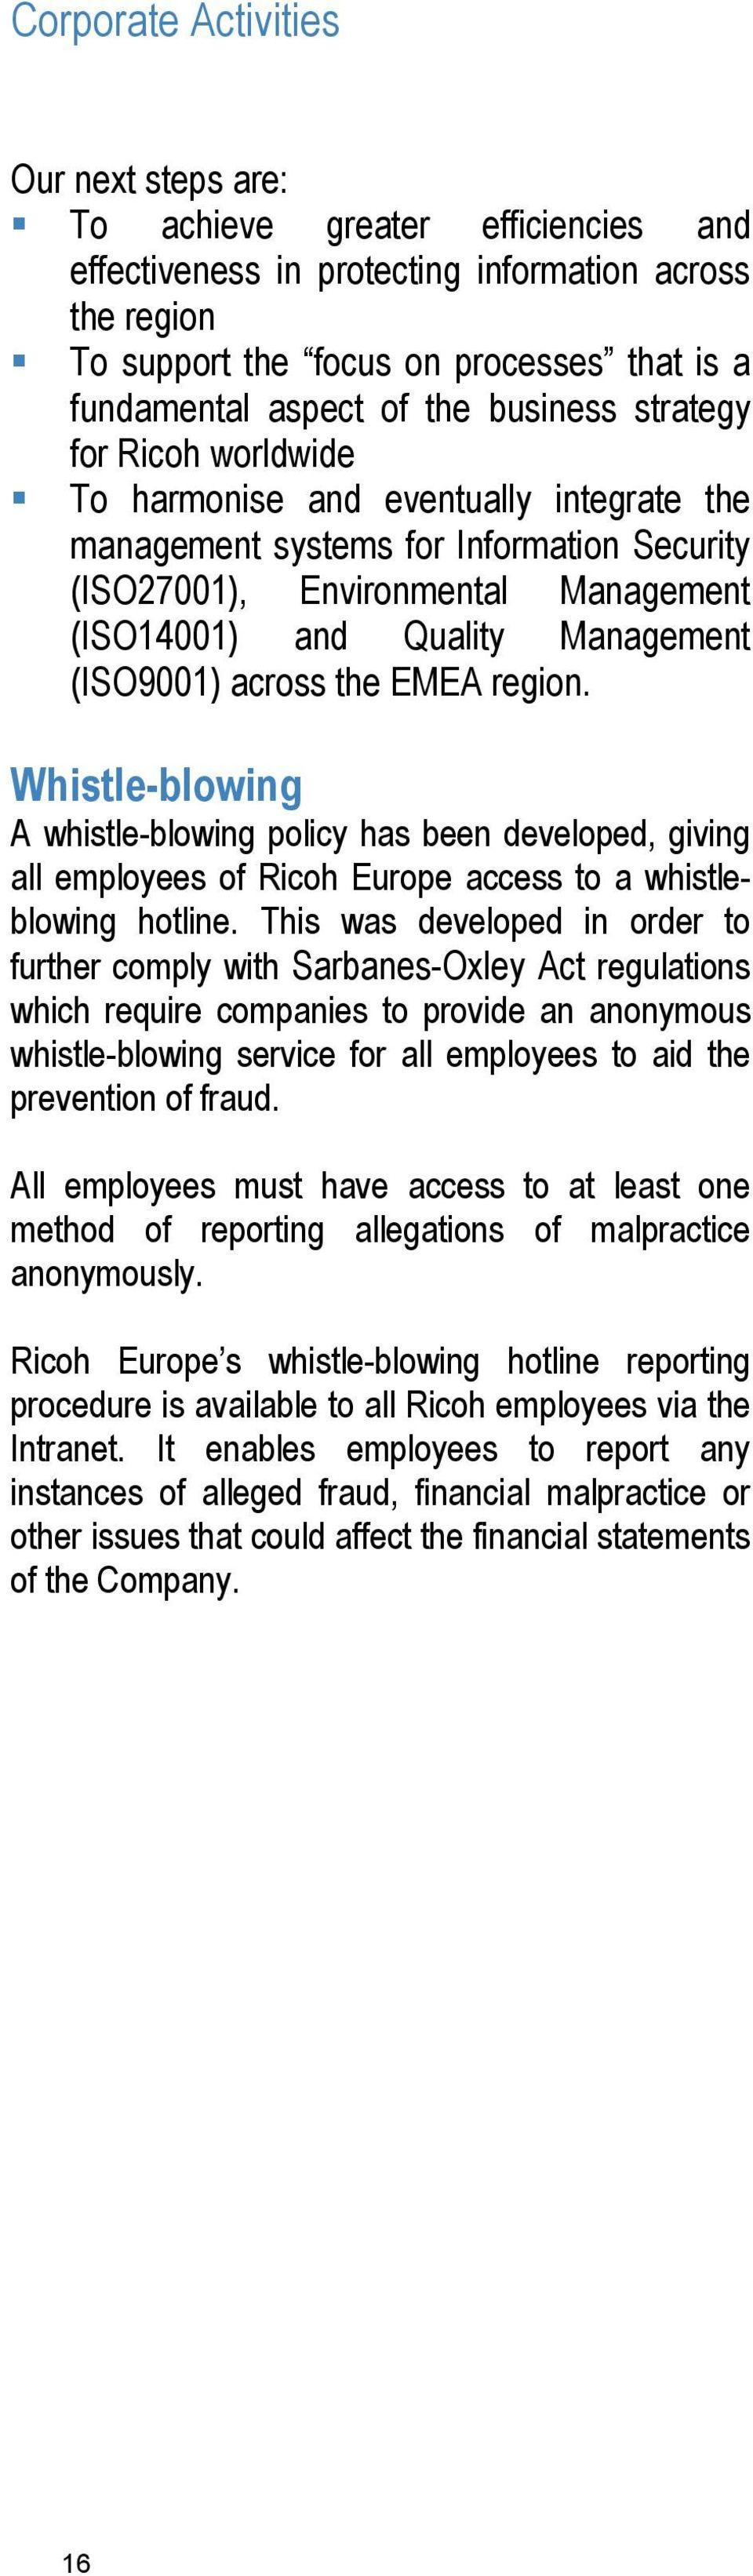 Management (ISO9001) across the EMEA region. Whistle-blowing A whistle-blowing policy has been developed, giving all employees of Ricoh Europe access to a whistleblowing hotline.